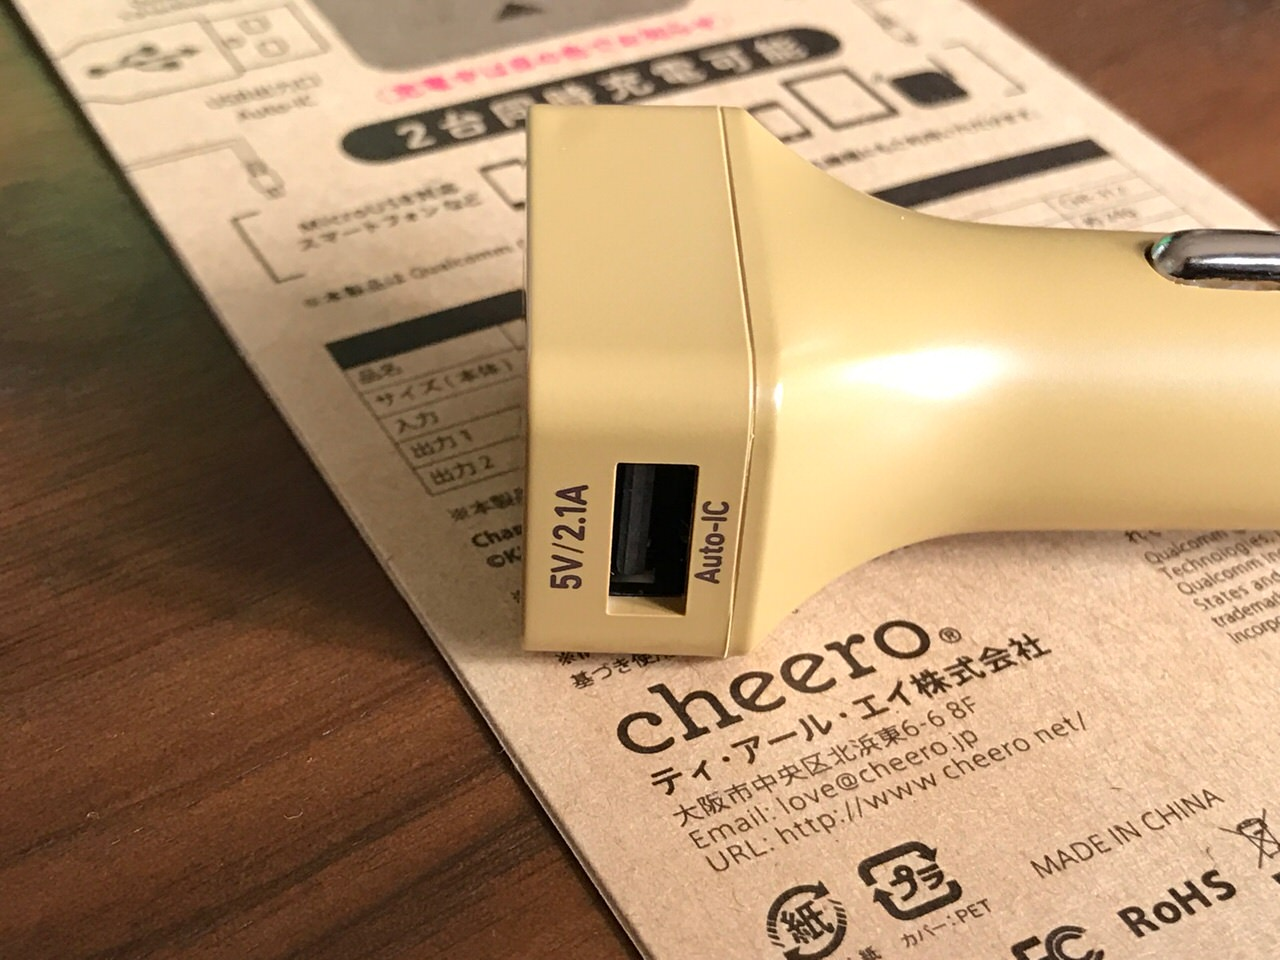 Danboard car charger 3649